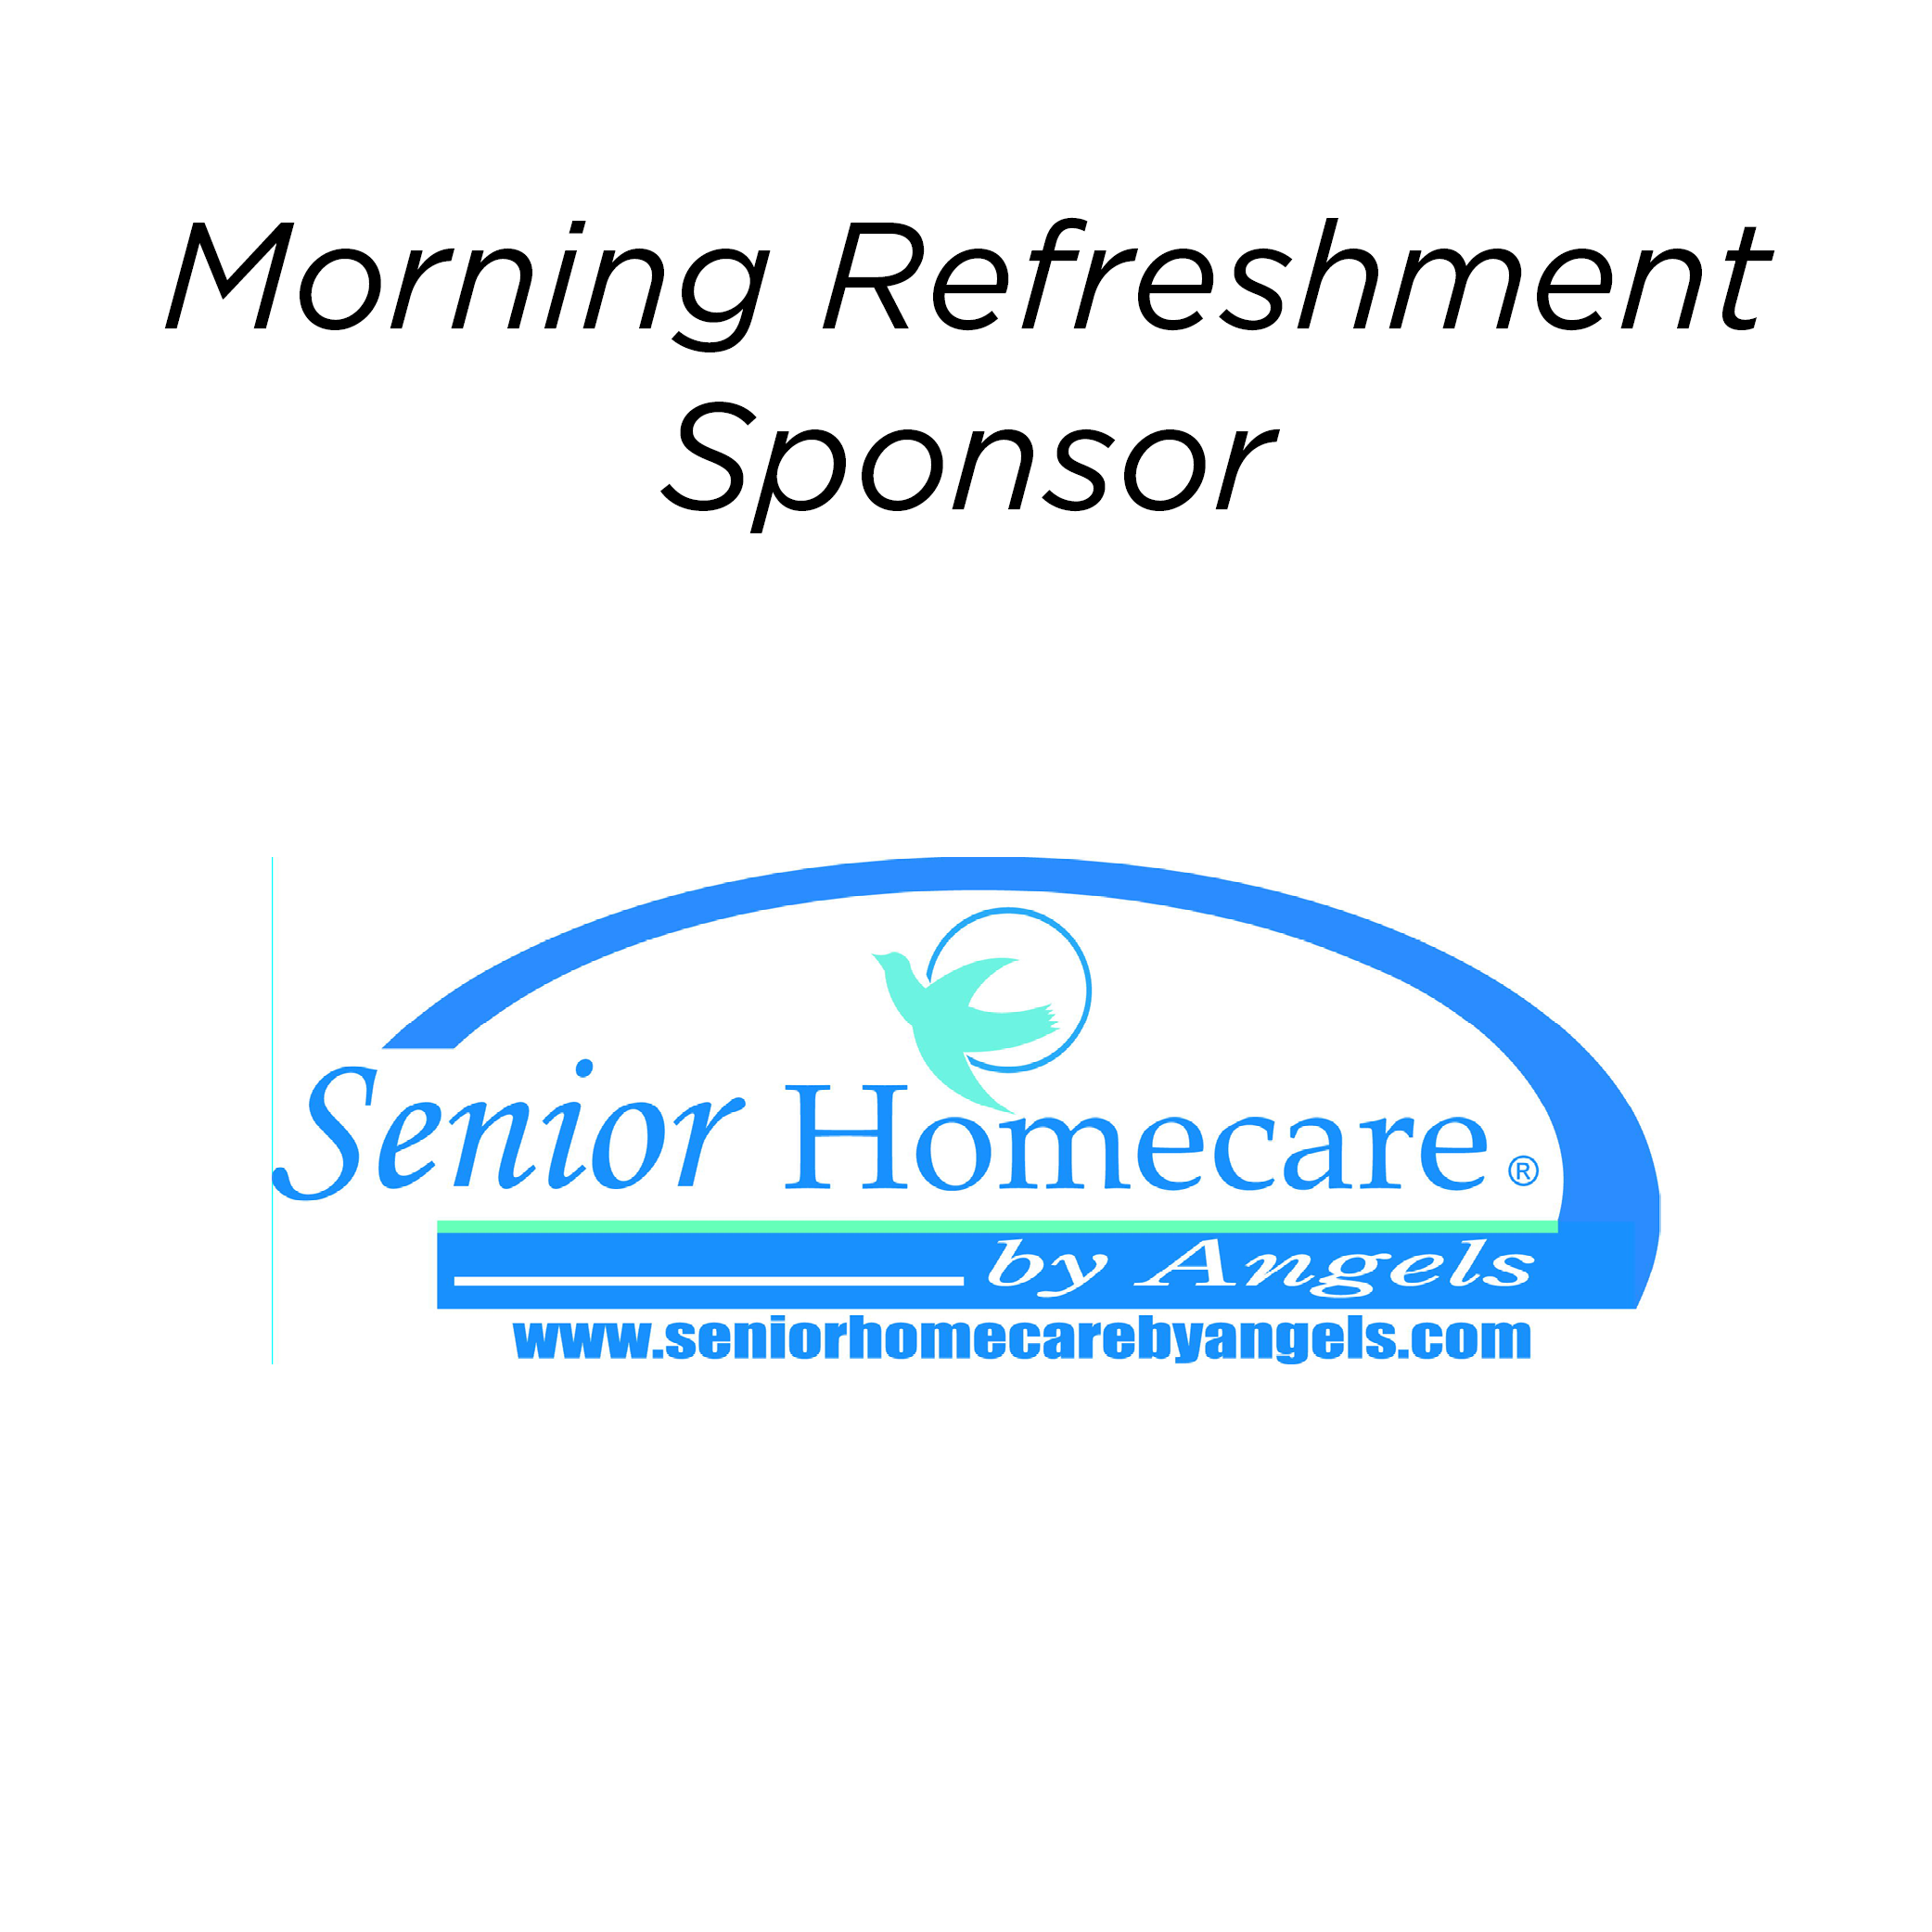 Senior Homecare - Morning Refreshment